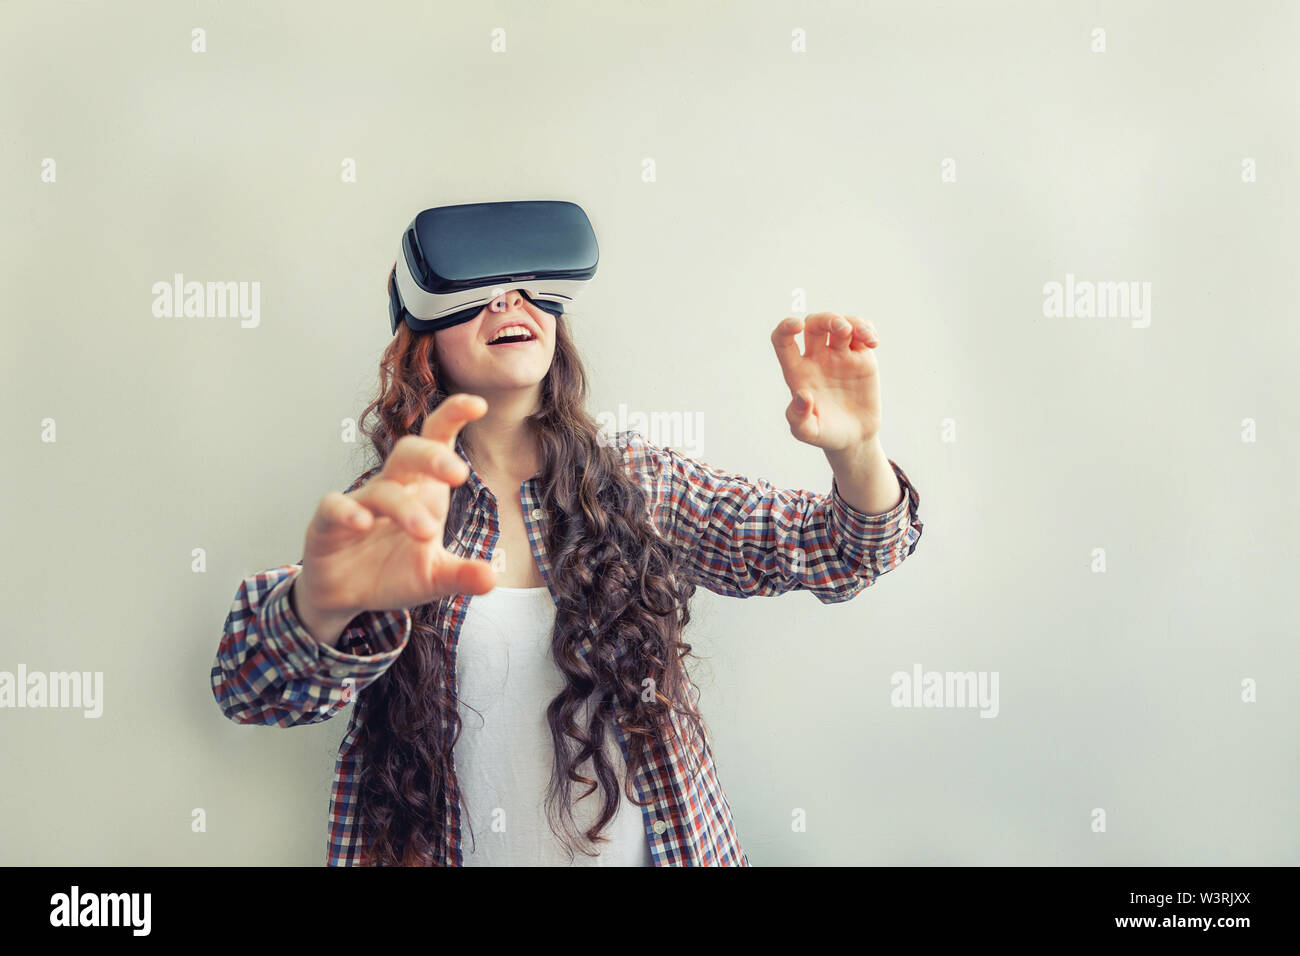 Young Woman Using Electronic Device Stock Photos & Young